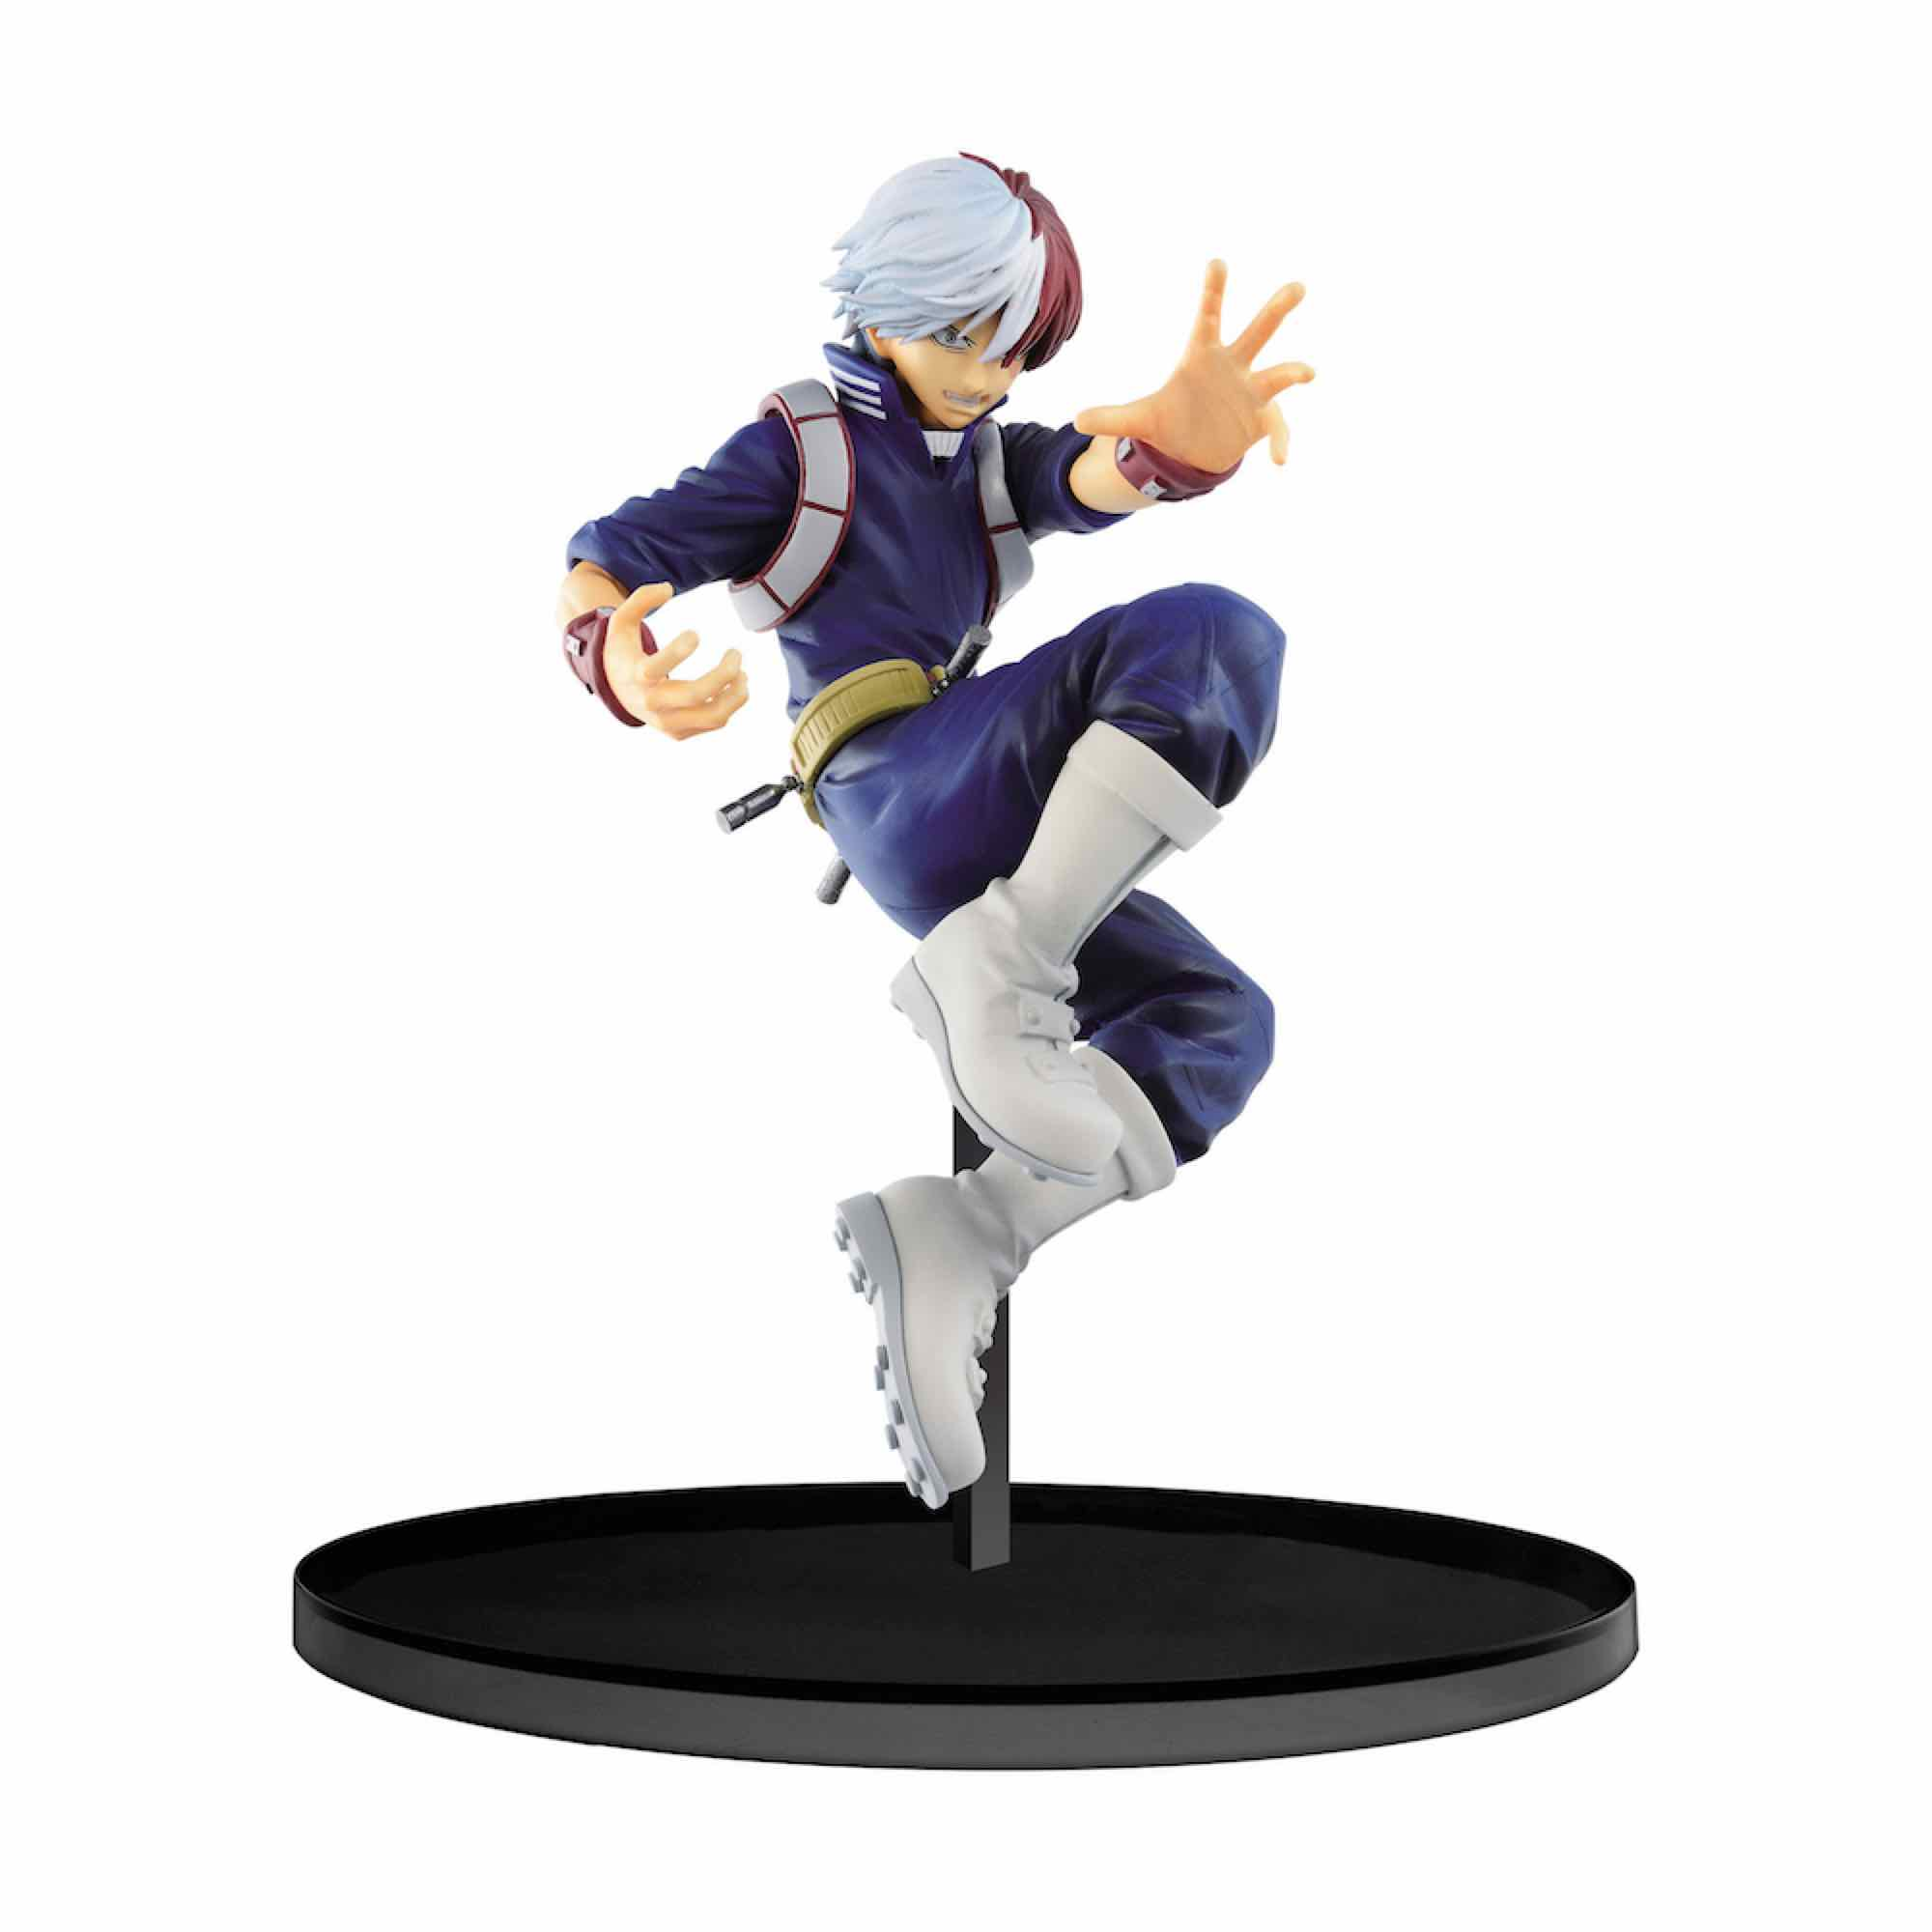 SHOTO TODOROKI FIGURA 13 CM MY HERO ACADEMIA BANPRESTO FIGURE COLOSSEUM VOL. 3